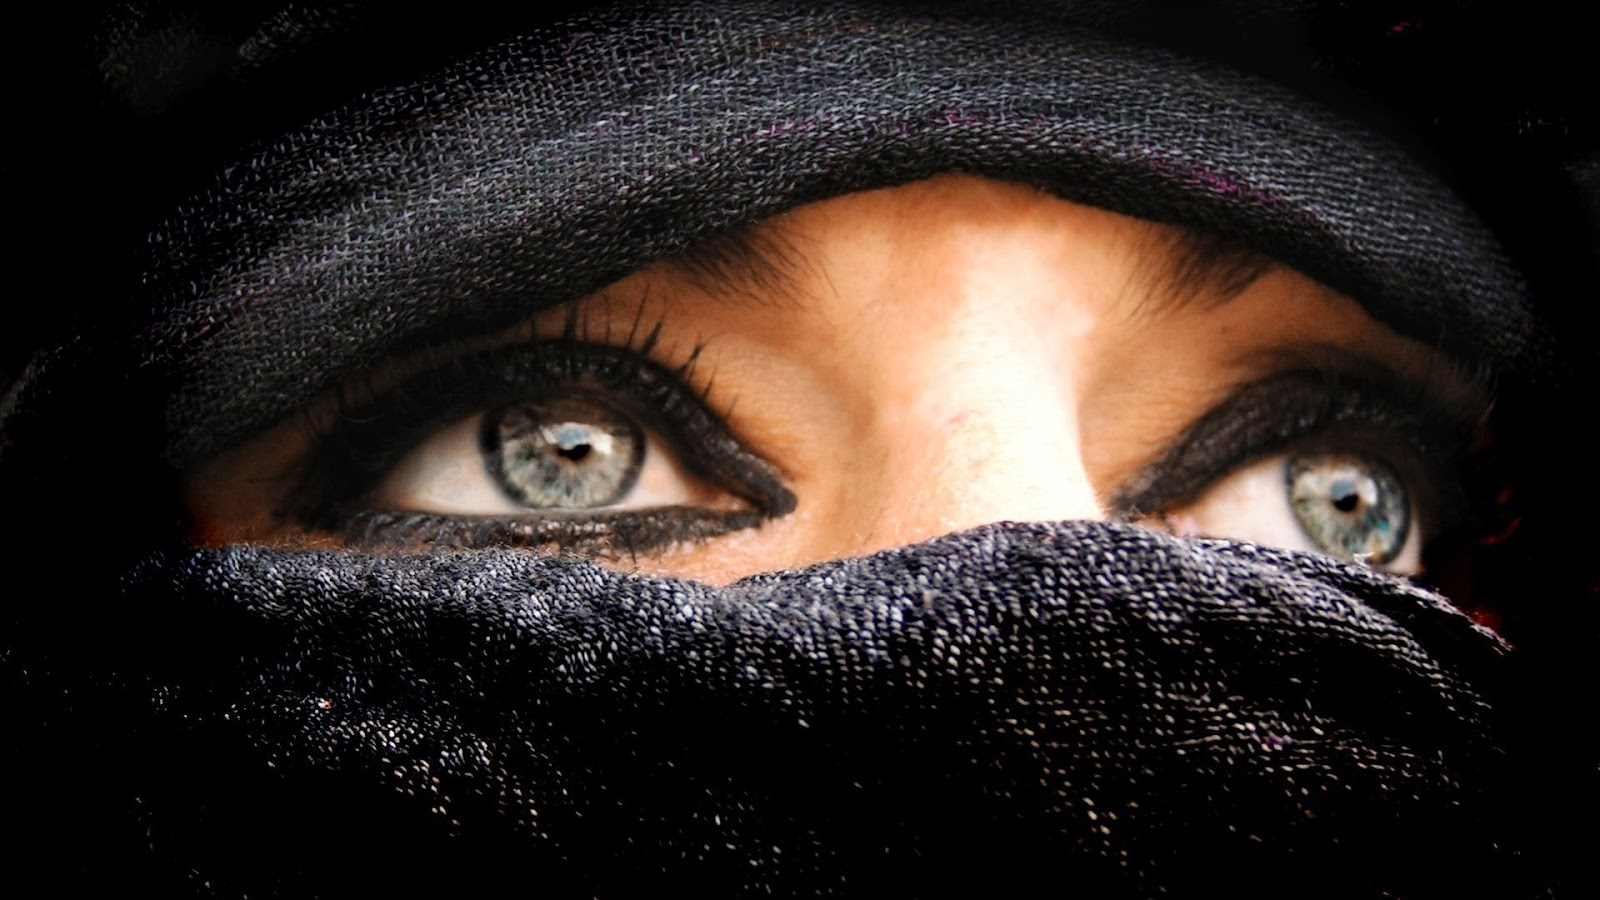 Life in Kuwait: Being oppressed as a woman